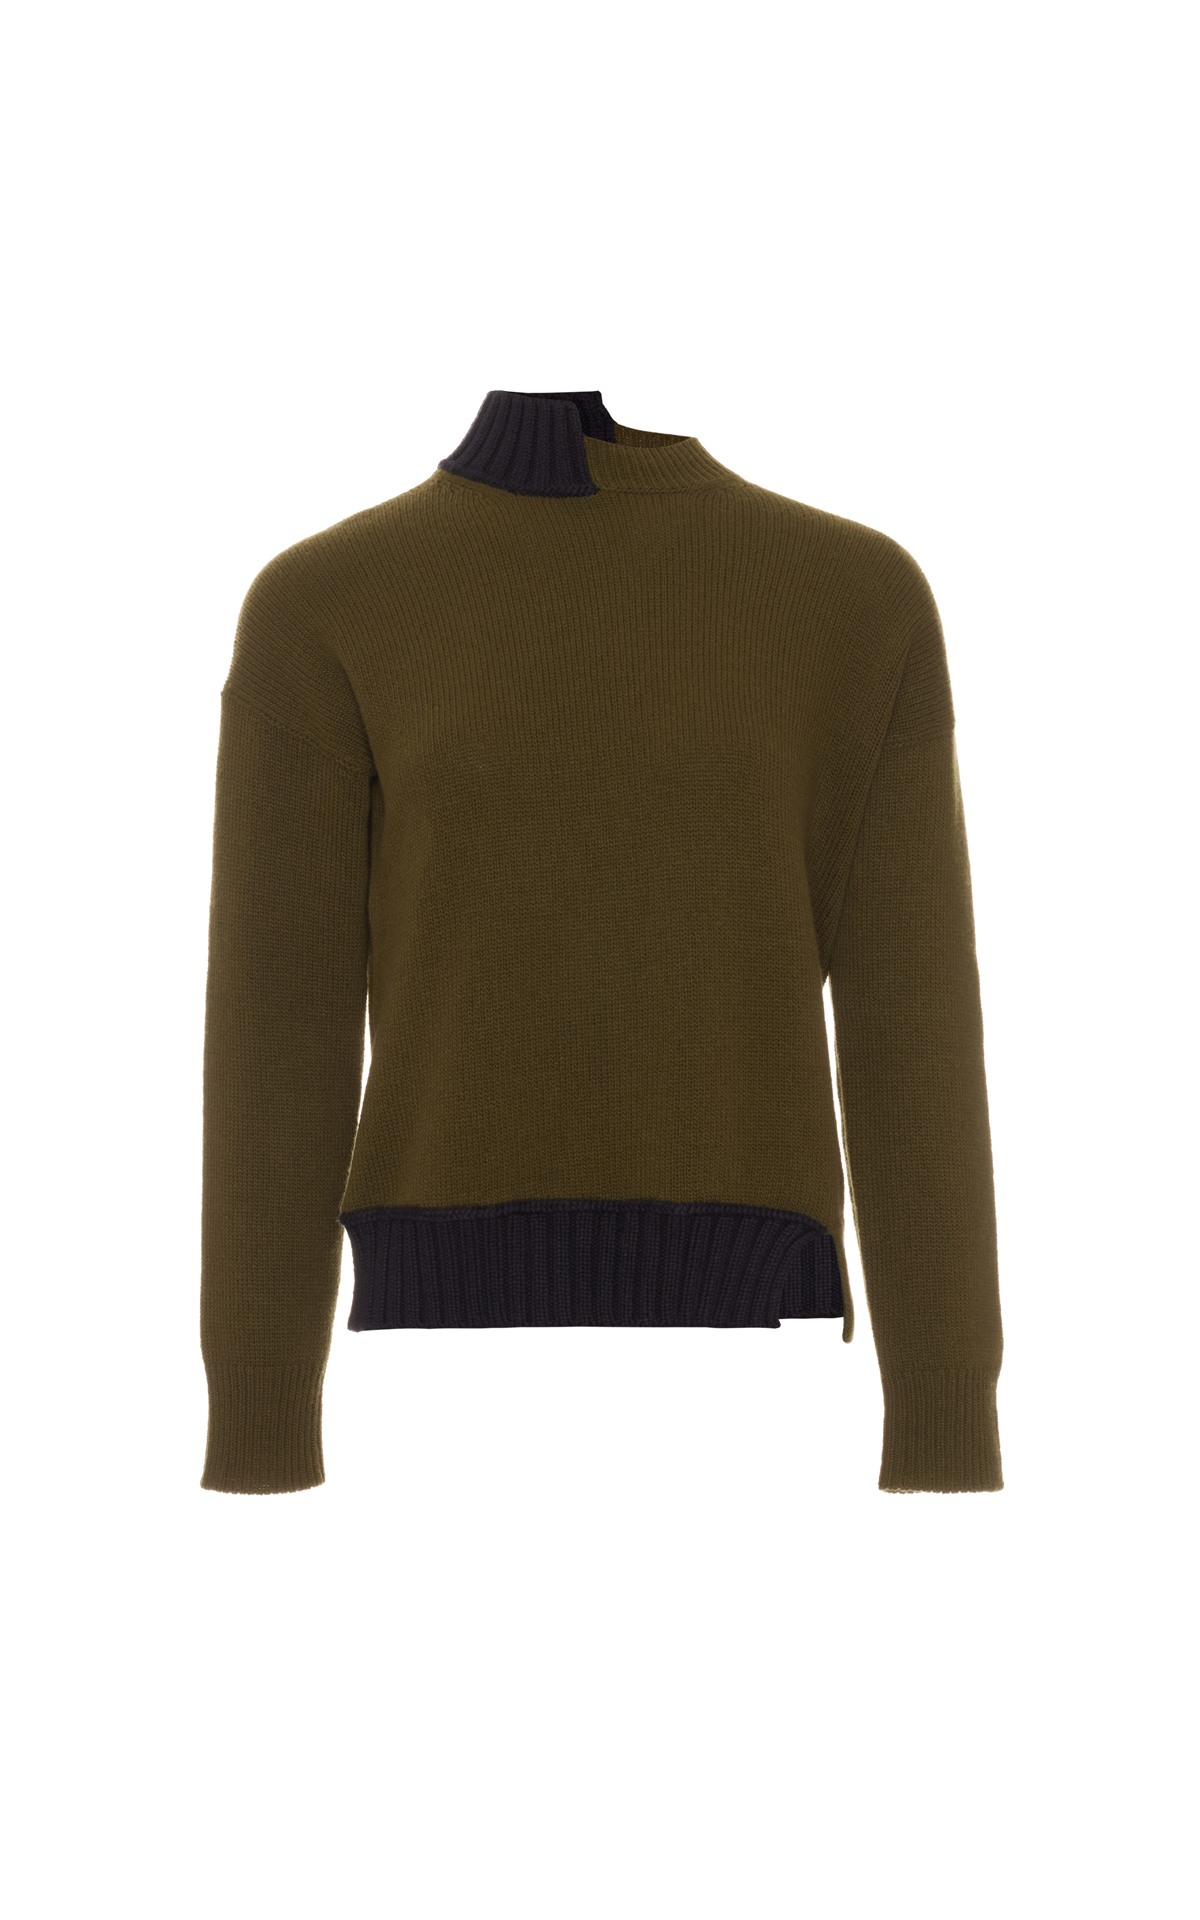 Marni Long sleeve turtleneck sweater mix black and khaki from Bicester Village